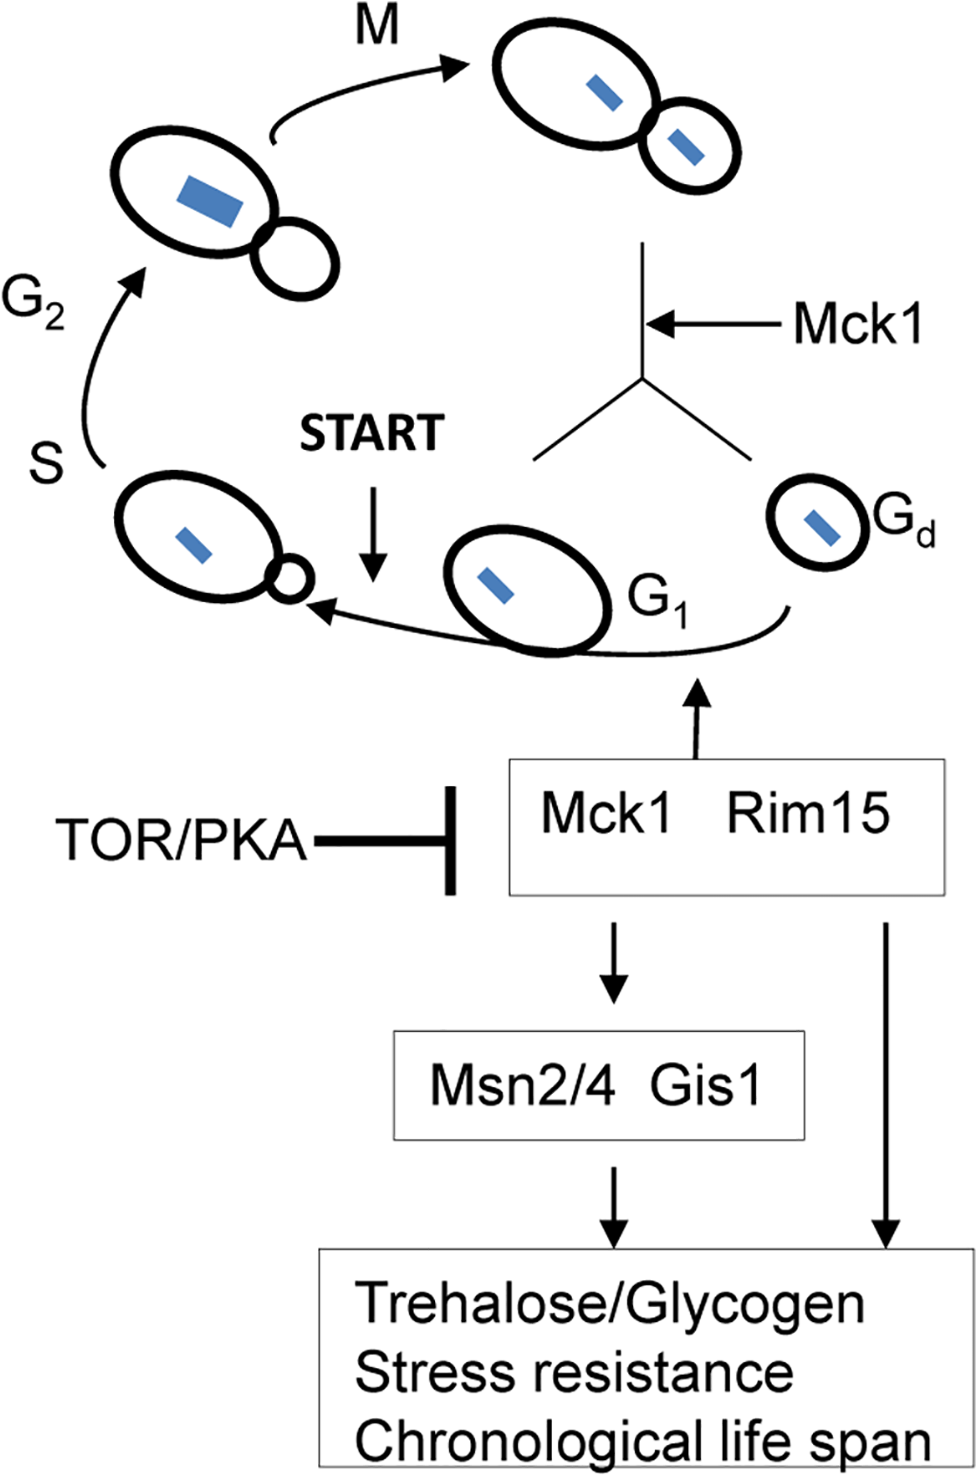 A model showing that transition-phase cell cycle, cell size and the acquisition of quiescence-related characteristics are coordinated by Mck1 and Rim15.